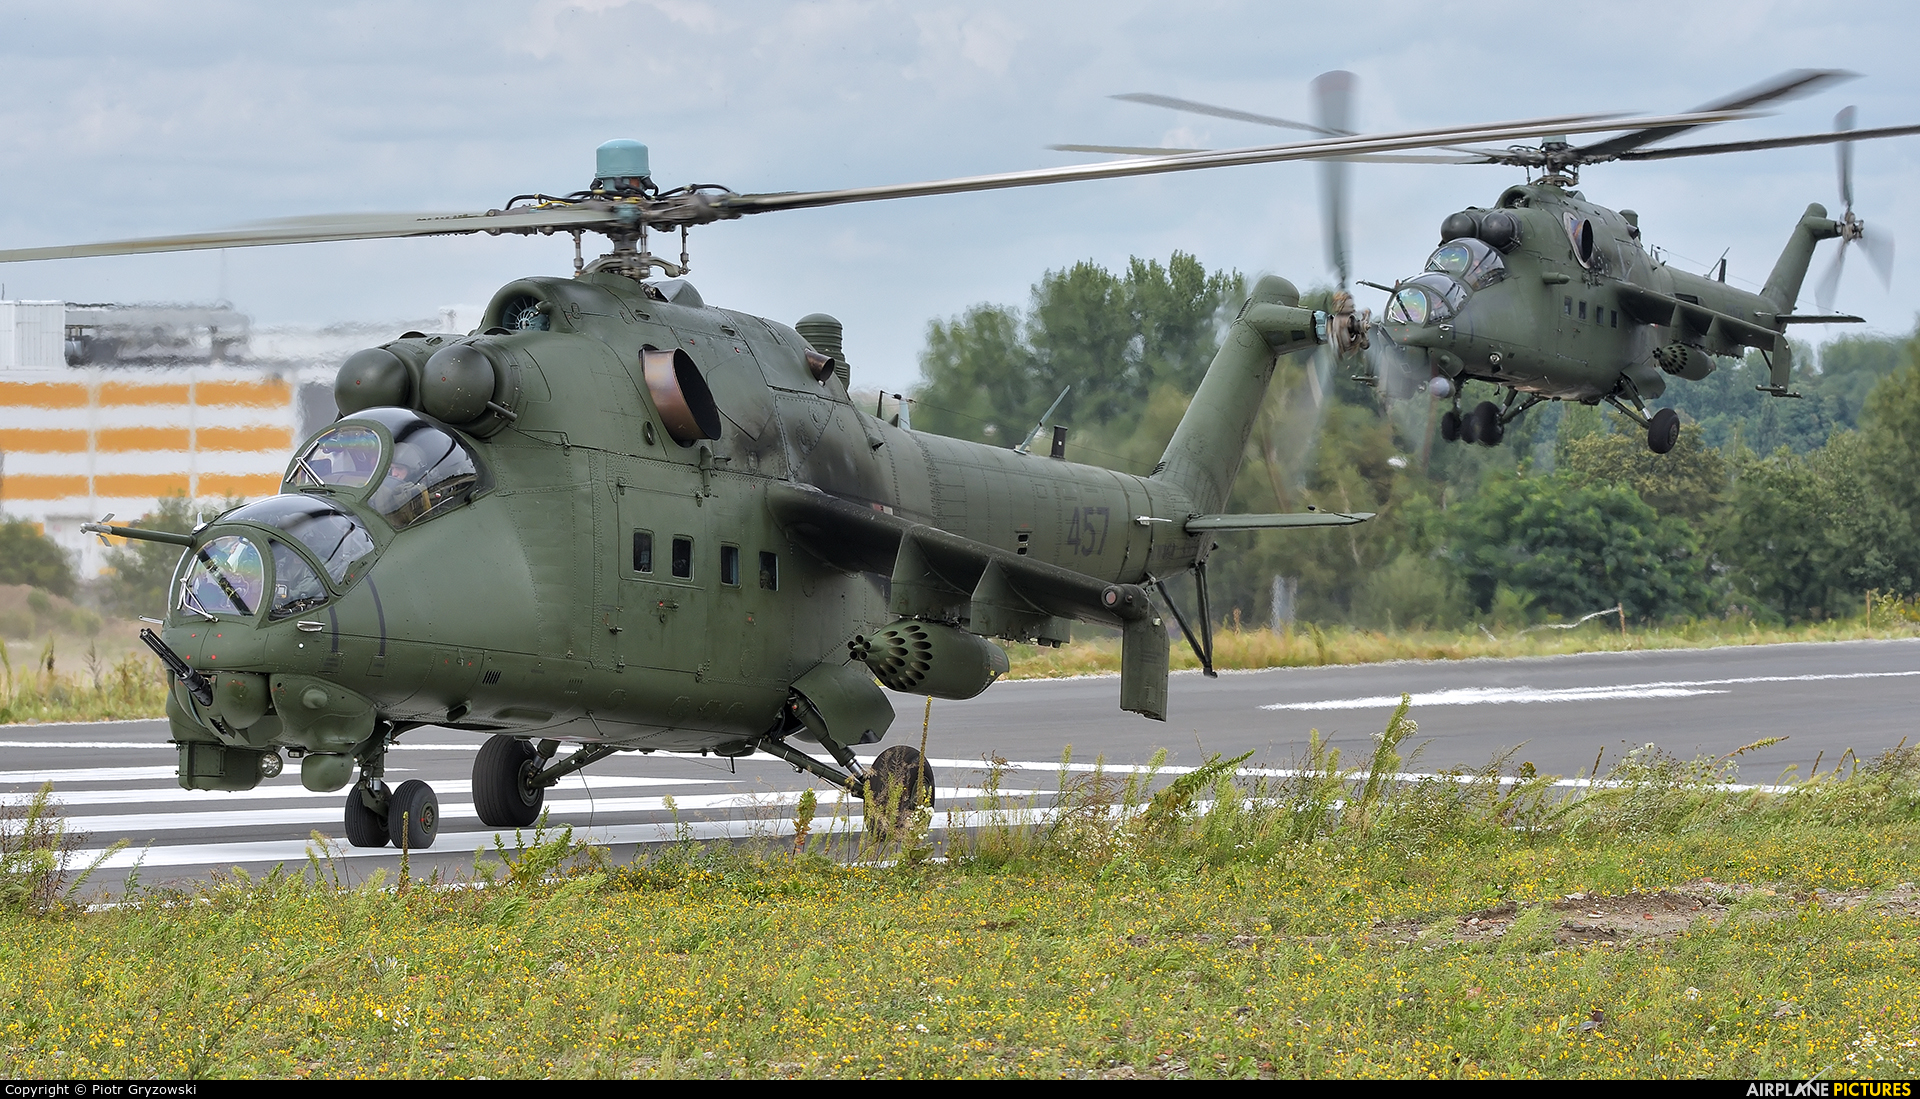 Poland - Army 457 aircraft at Katowice Muchowiec